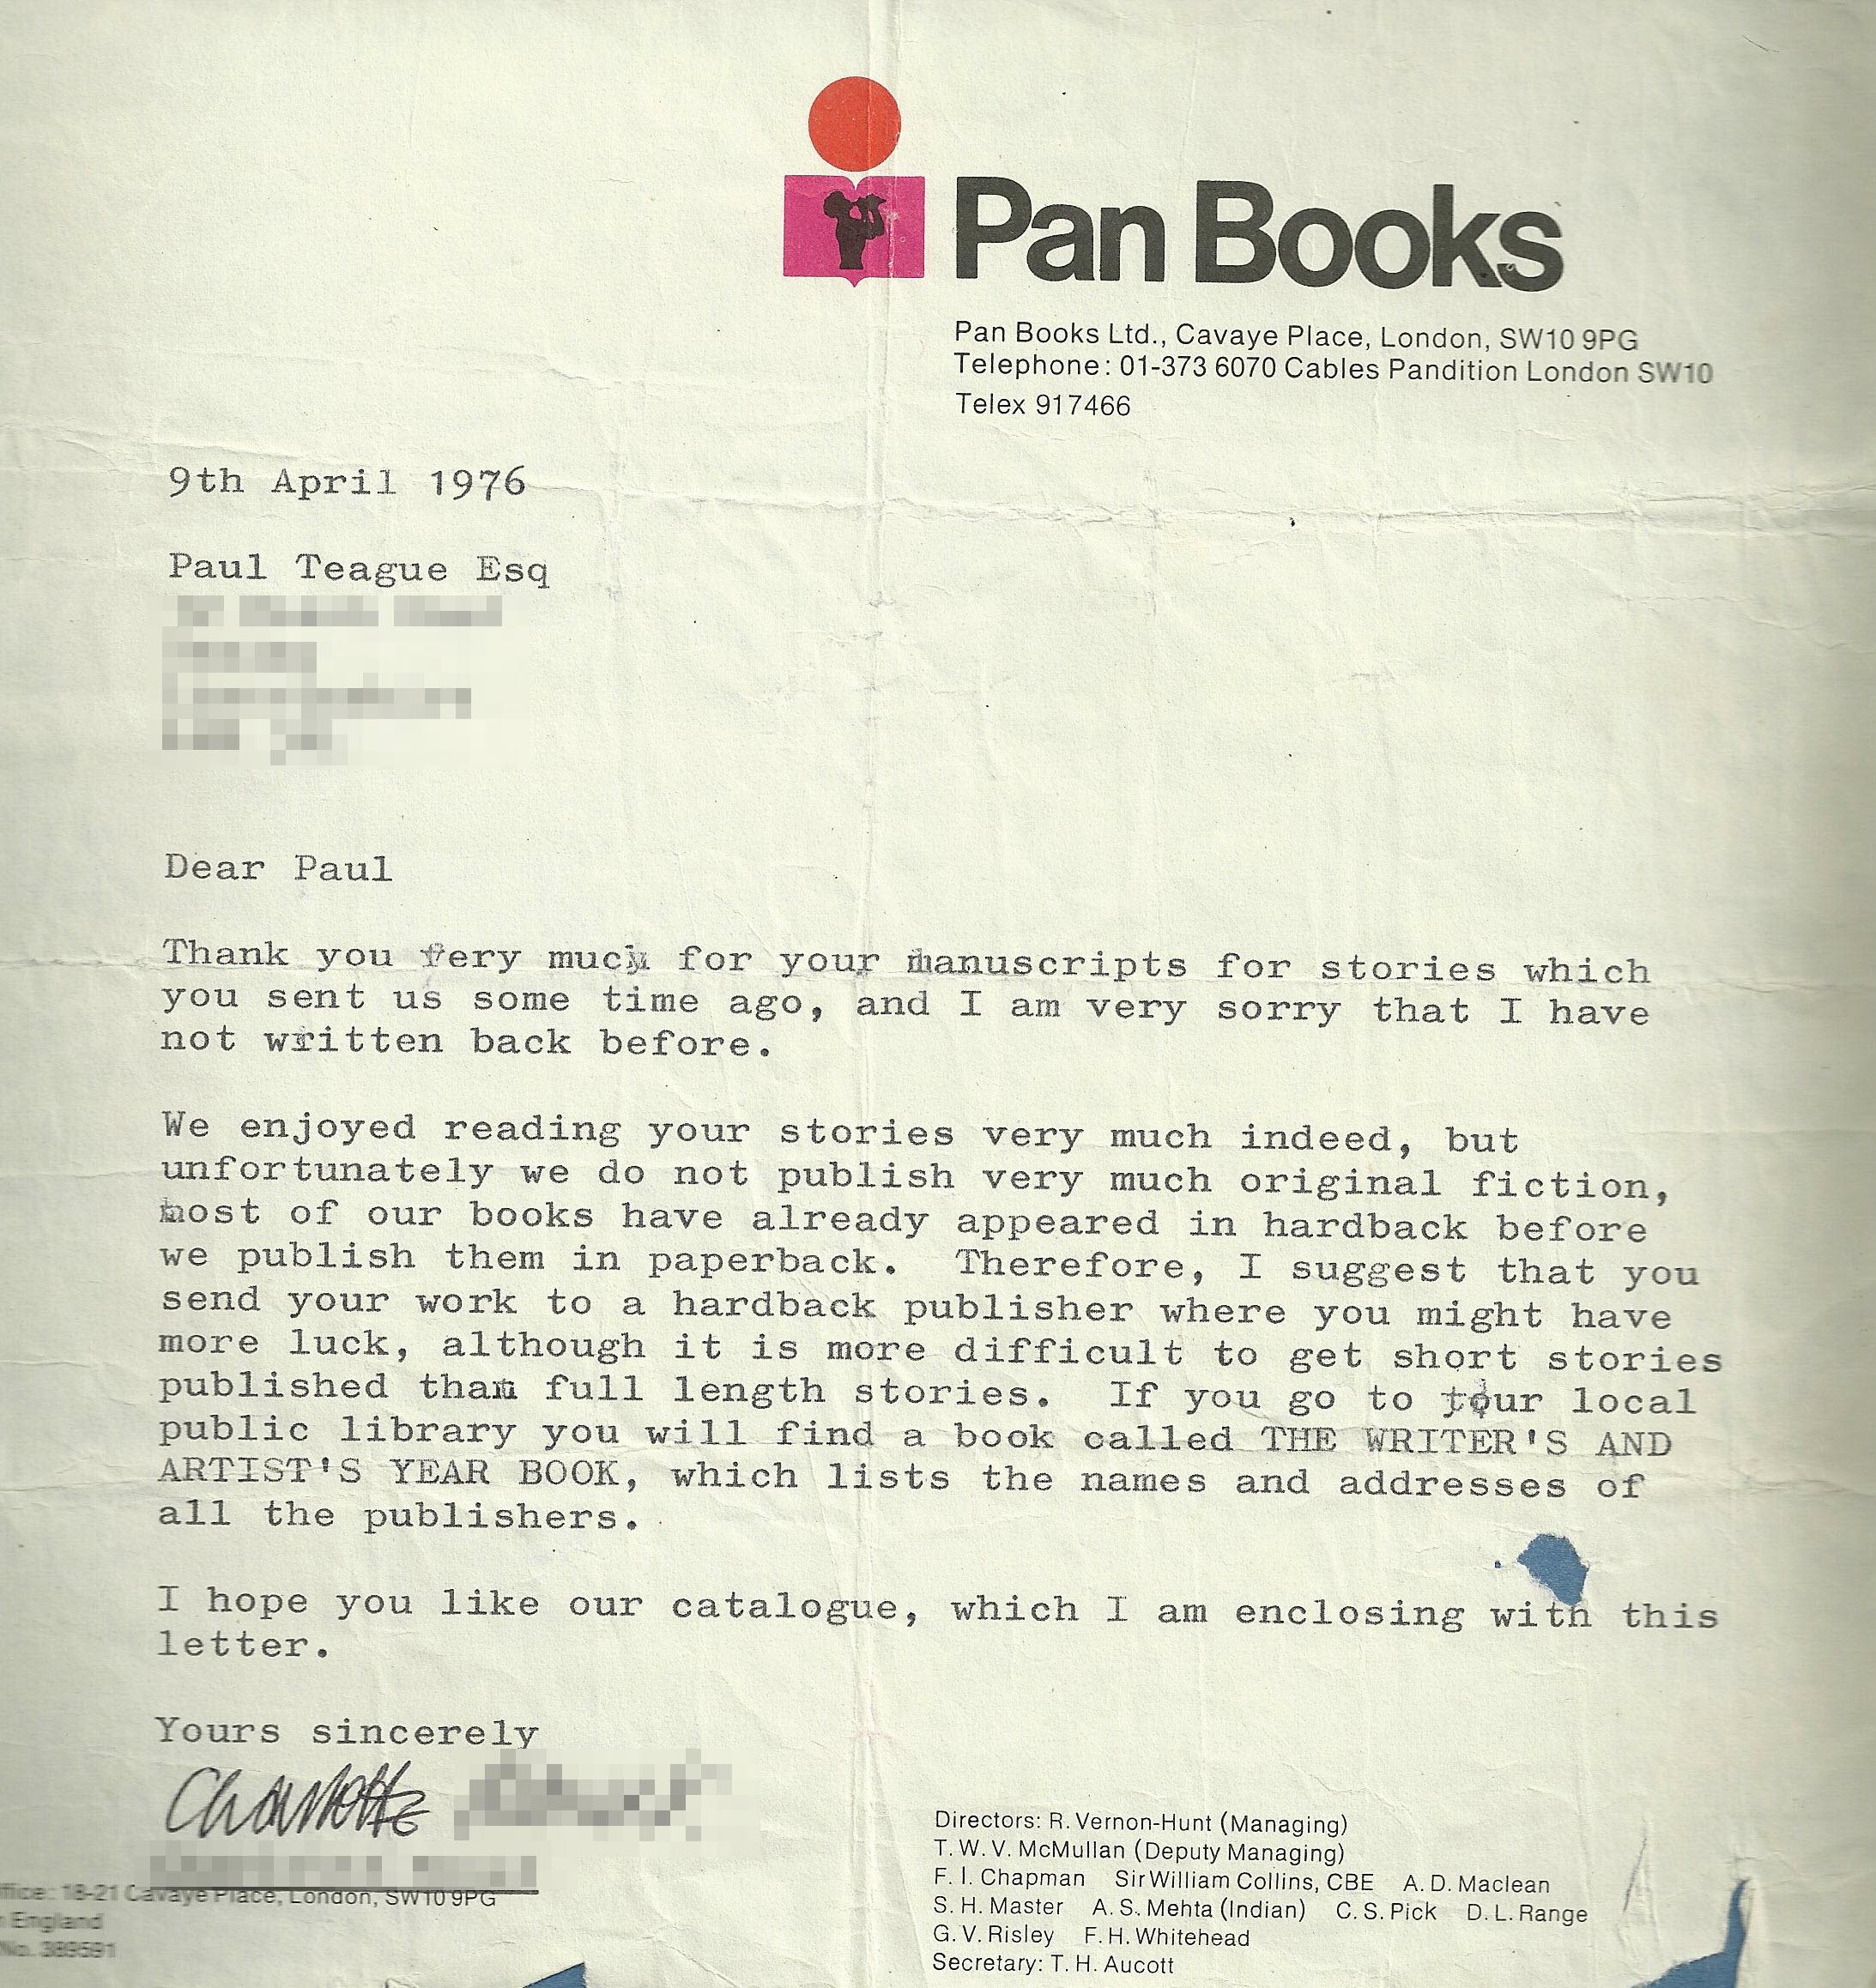 Pan Books rejection letter